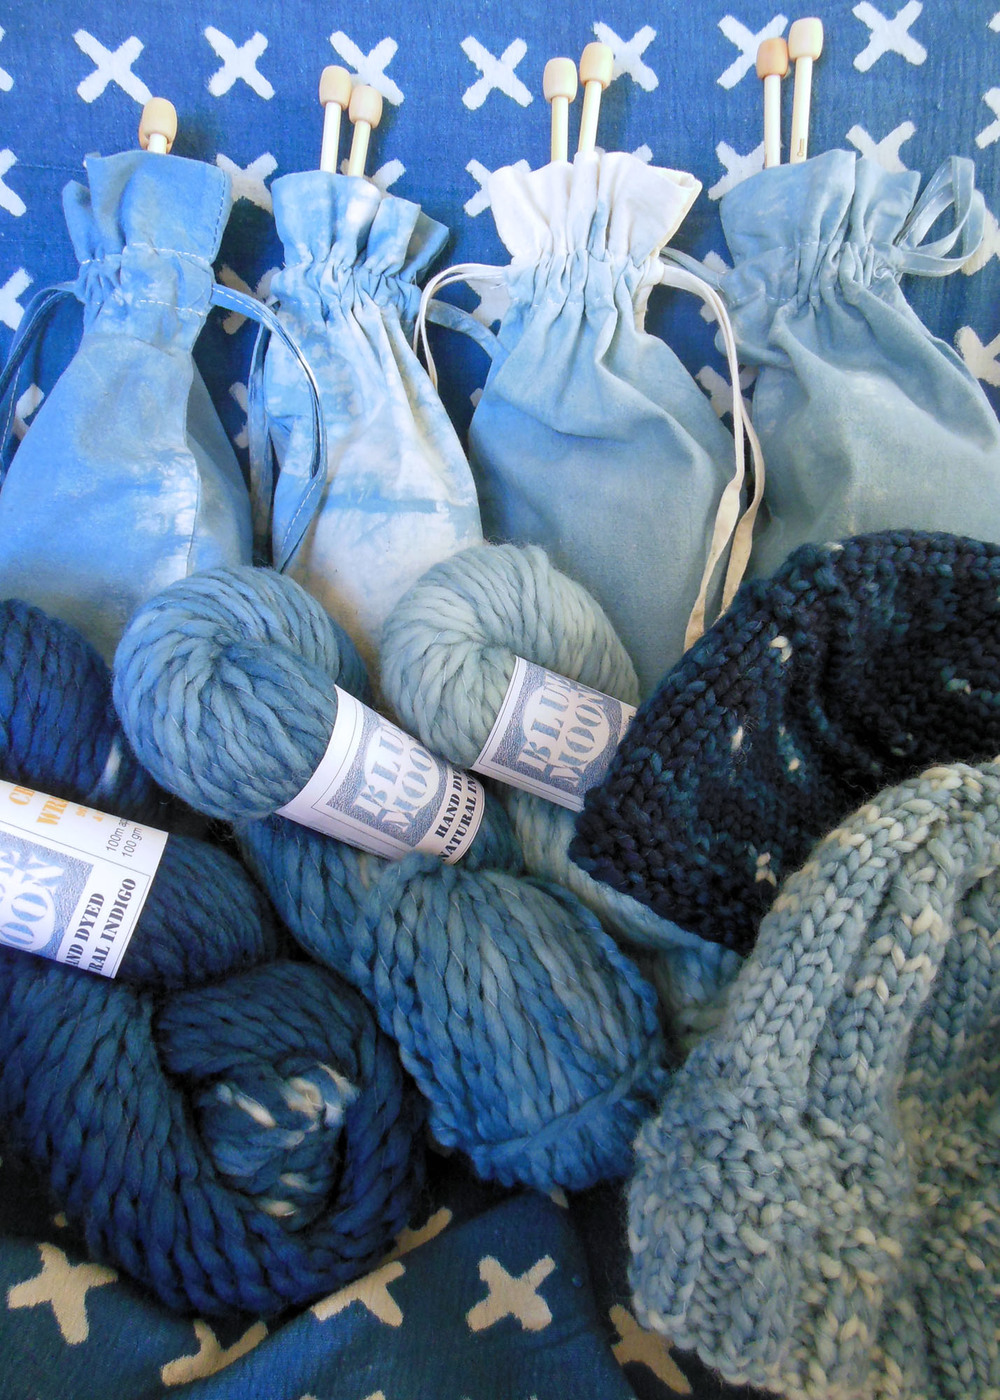 hat knit kits.jpg